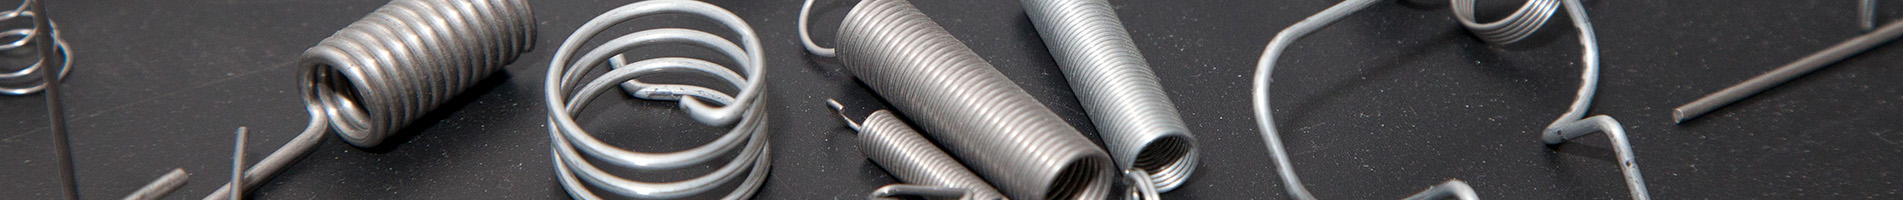 selection of springs on a grey background in a banner image